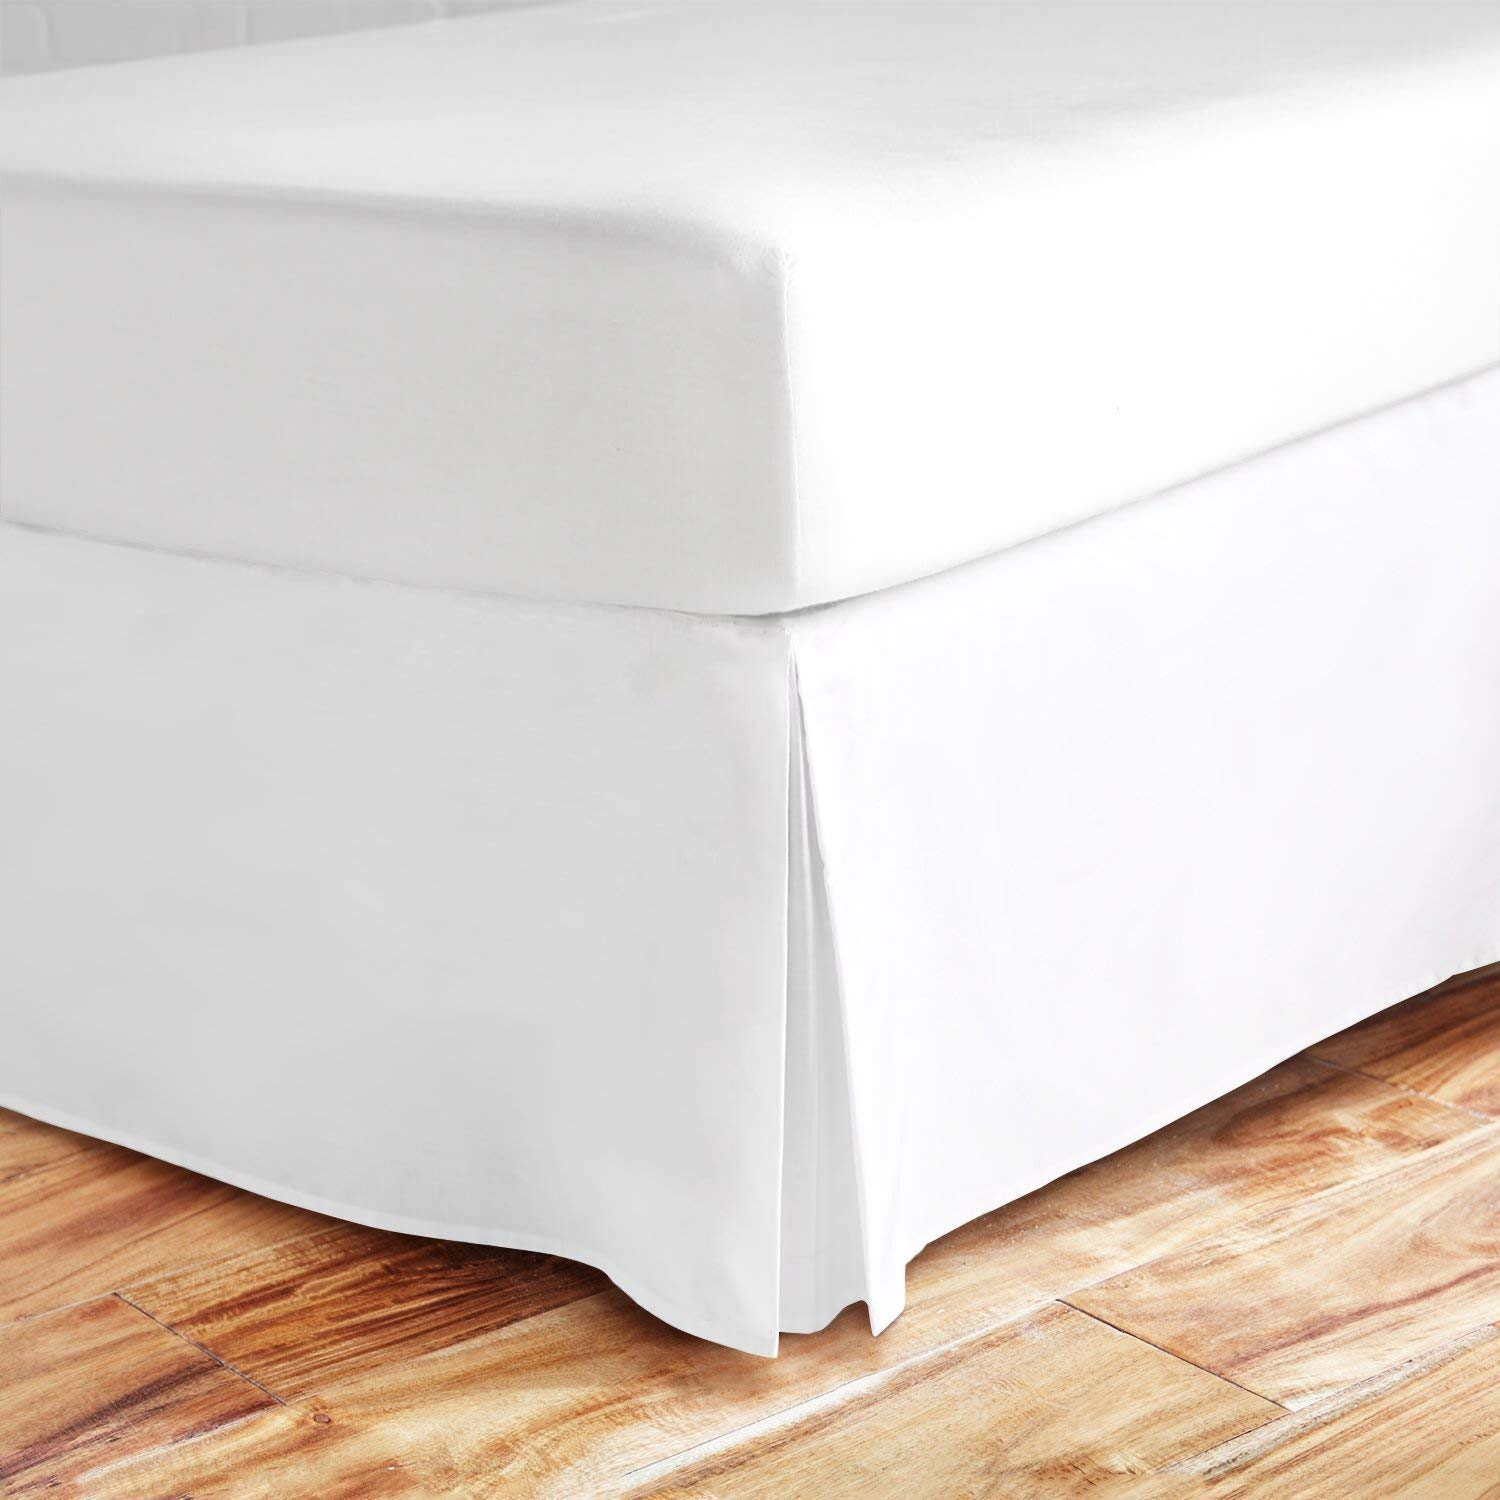 Pleated Tailored Split Cornor Bed Skirt !! King Size, Ivory Color, Drop Length 12-inch - Hotel Quality Egyptian Cotton Most Popular 600-TC Solid Pattern Bed Skirt